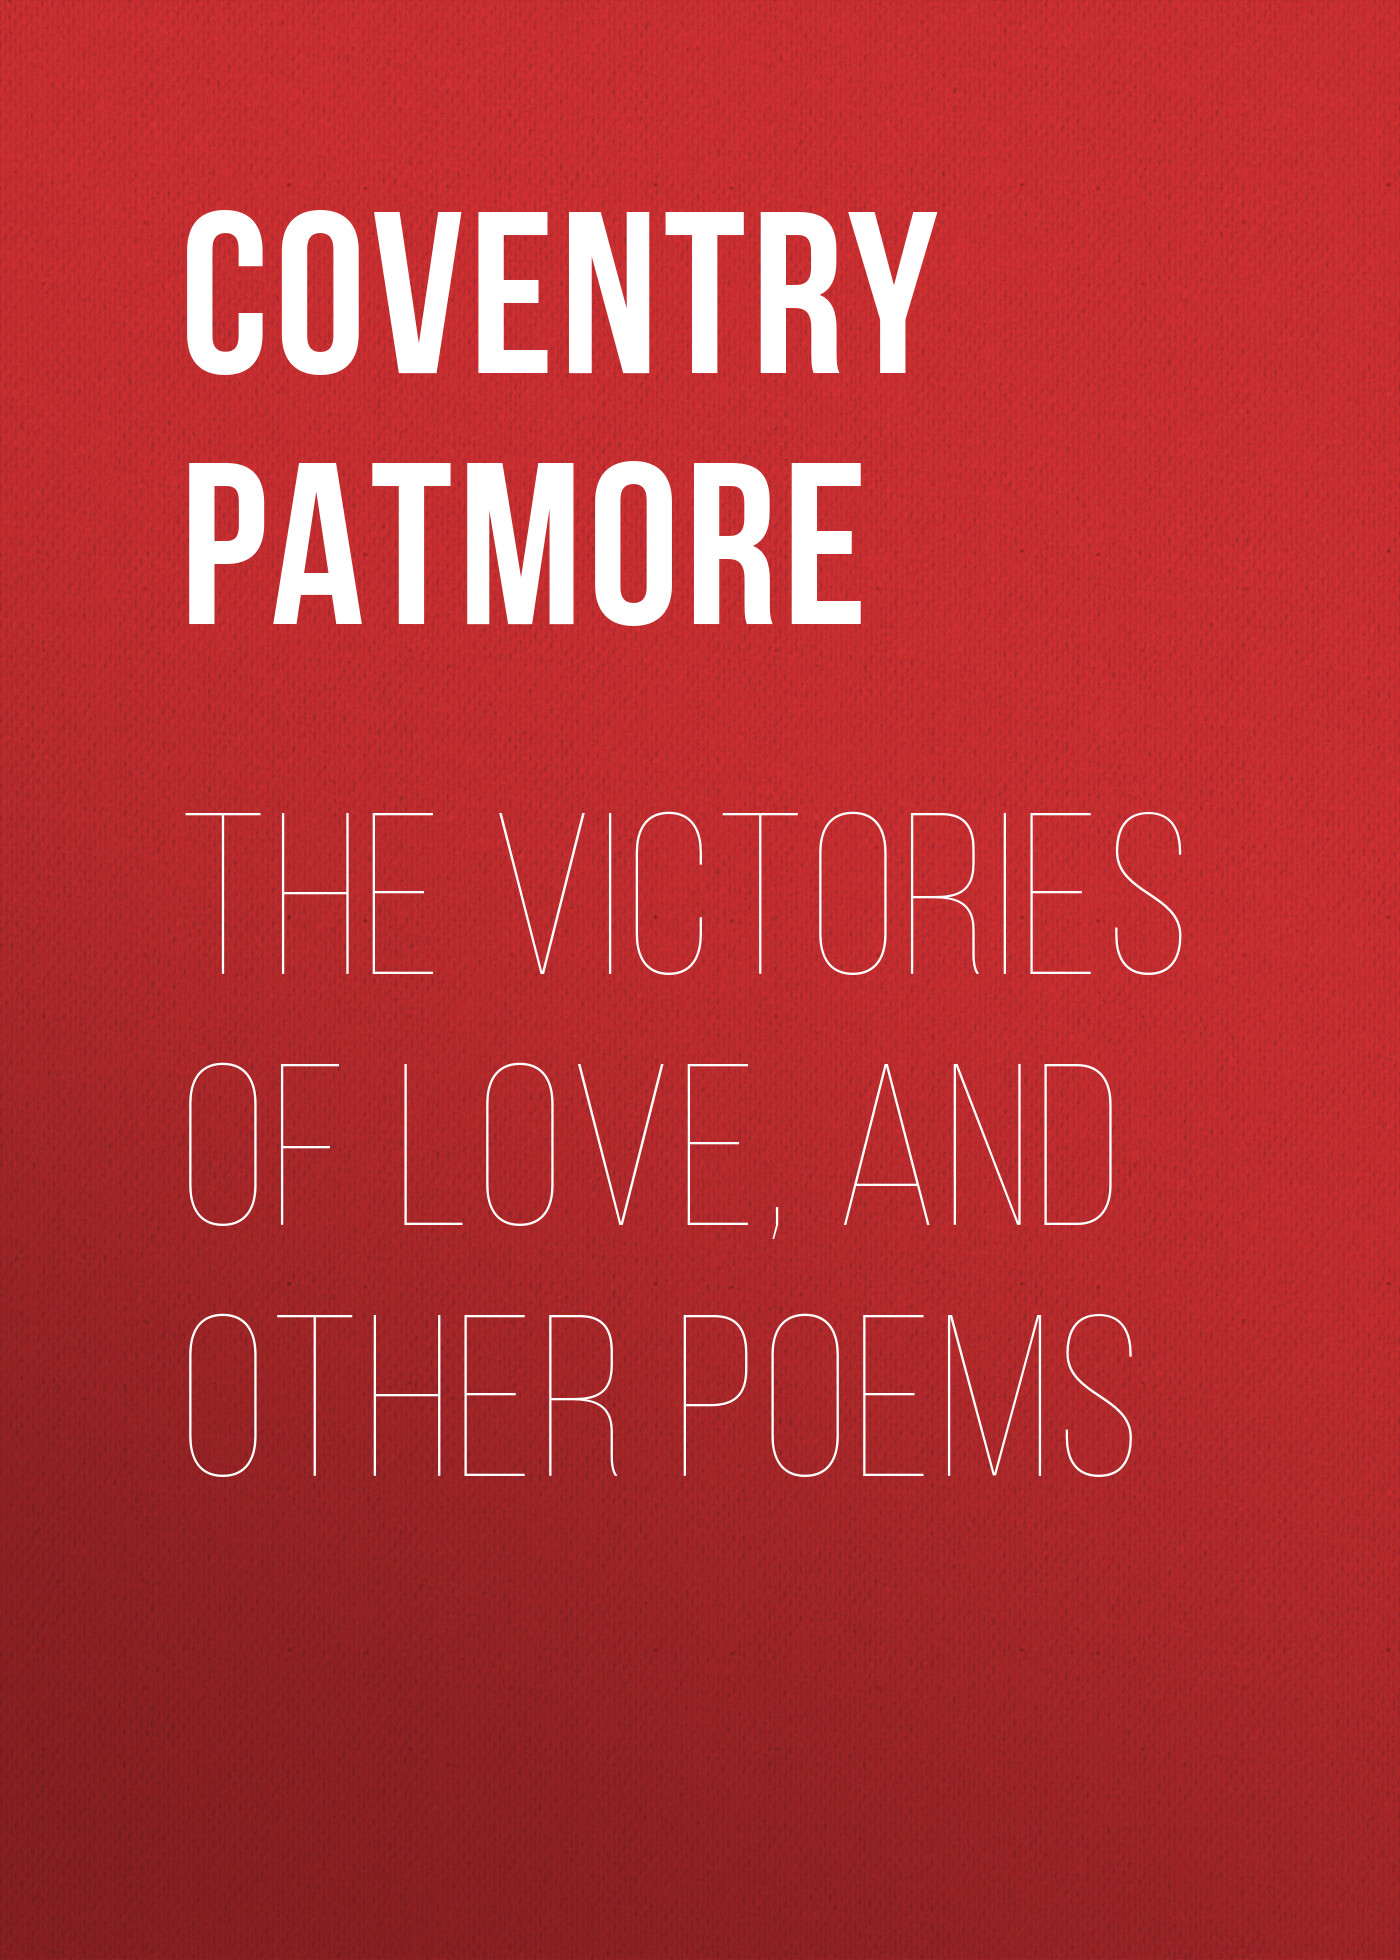 Coventry Patmore The Victories of Love, and Other Poems carlton dawe love and the world and other poems and other poems